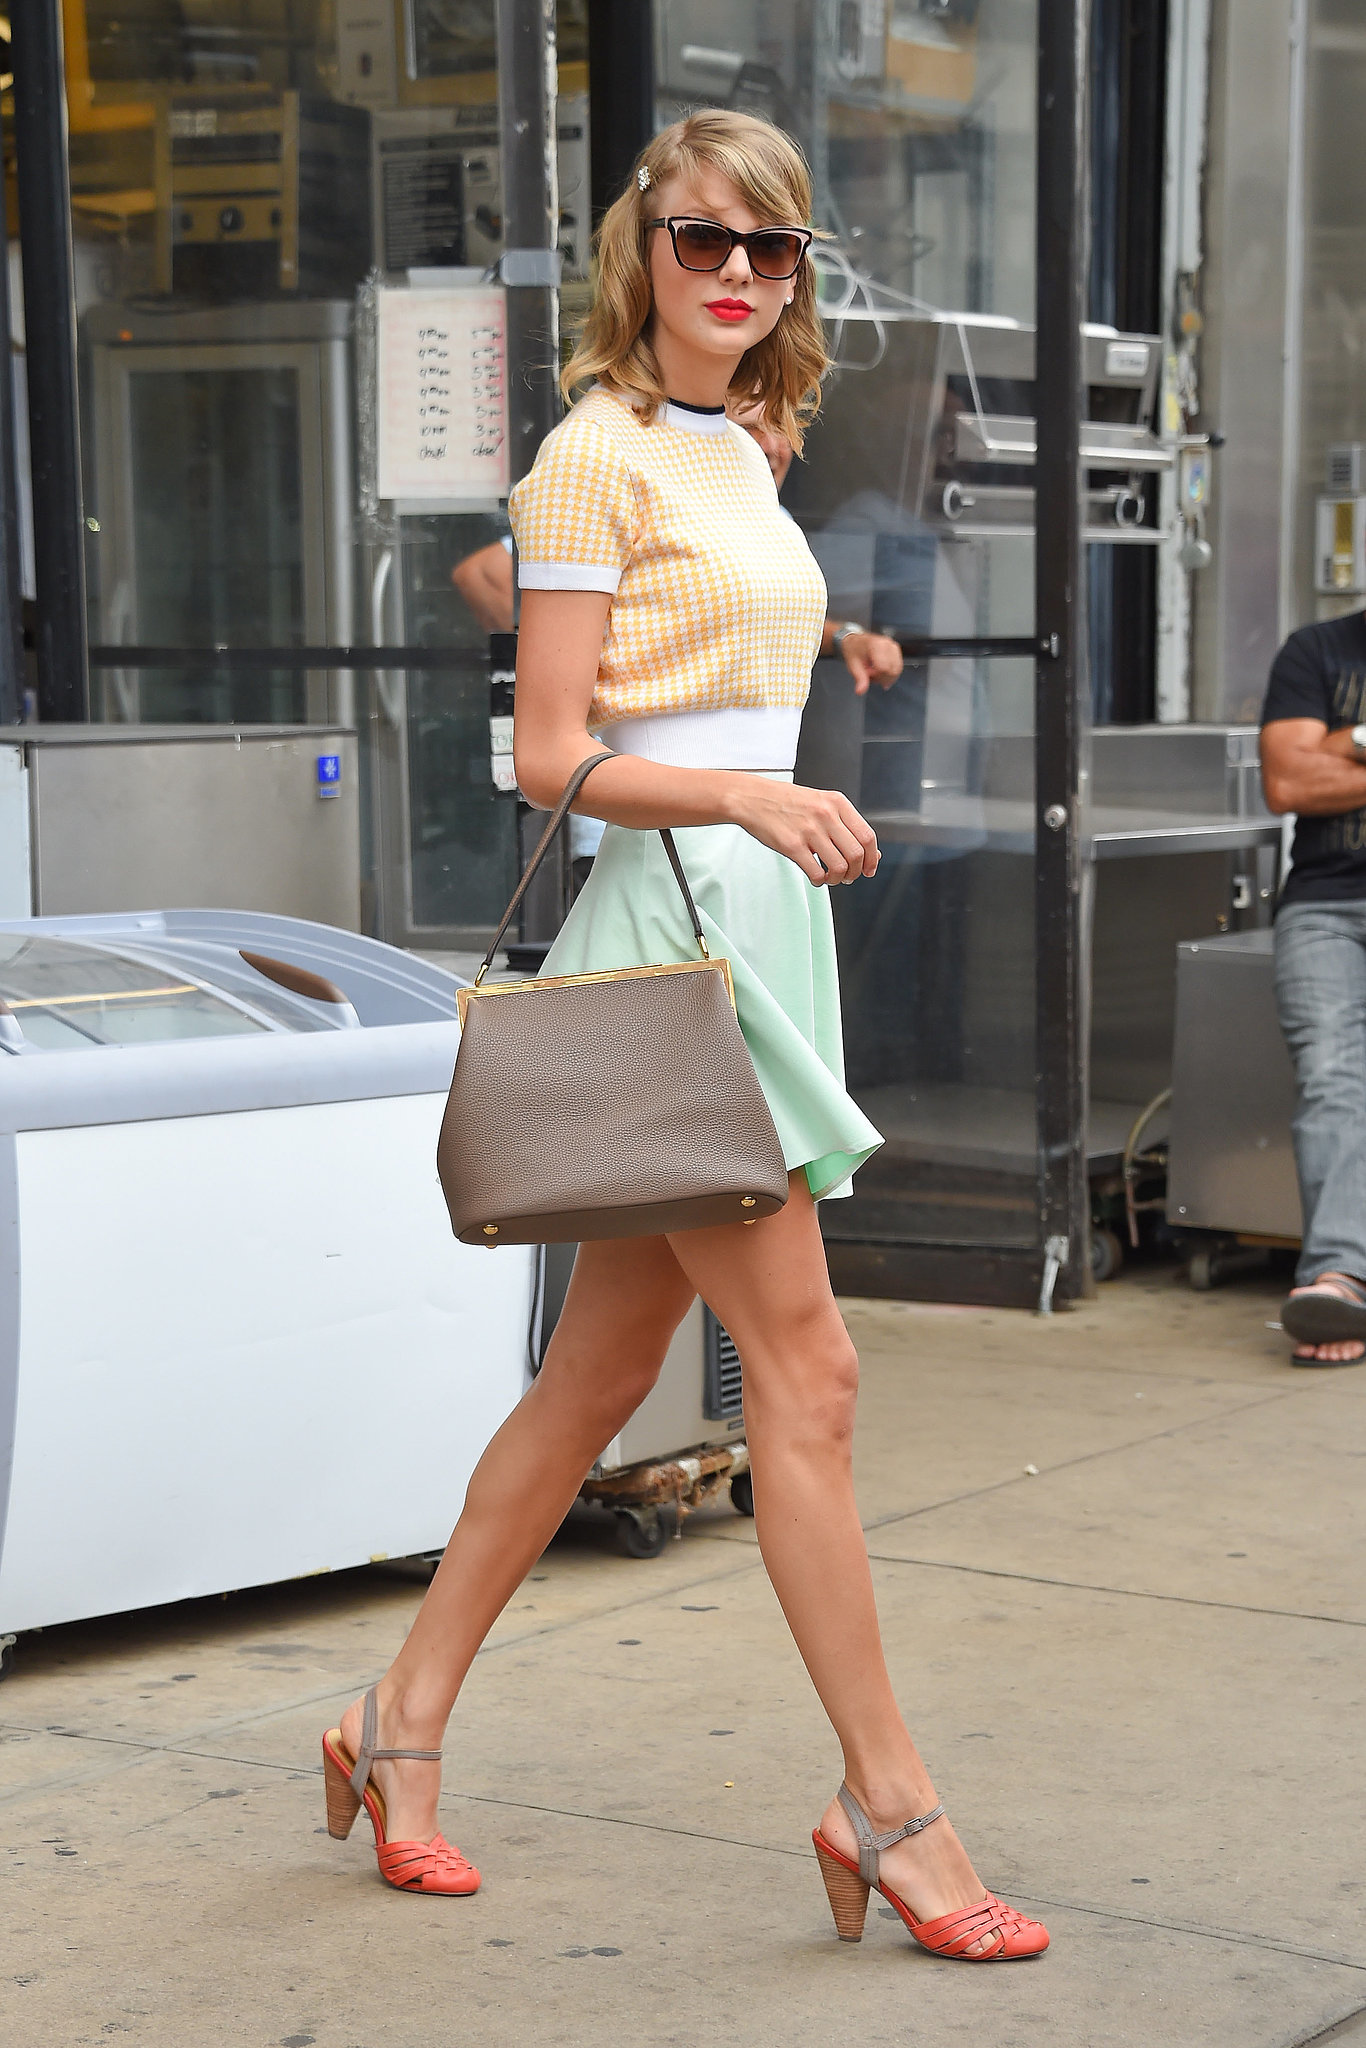 7100c00711bd0b The Best And Worst Celeb Street Style - style etcetera